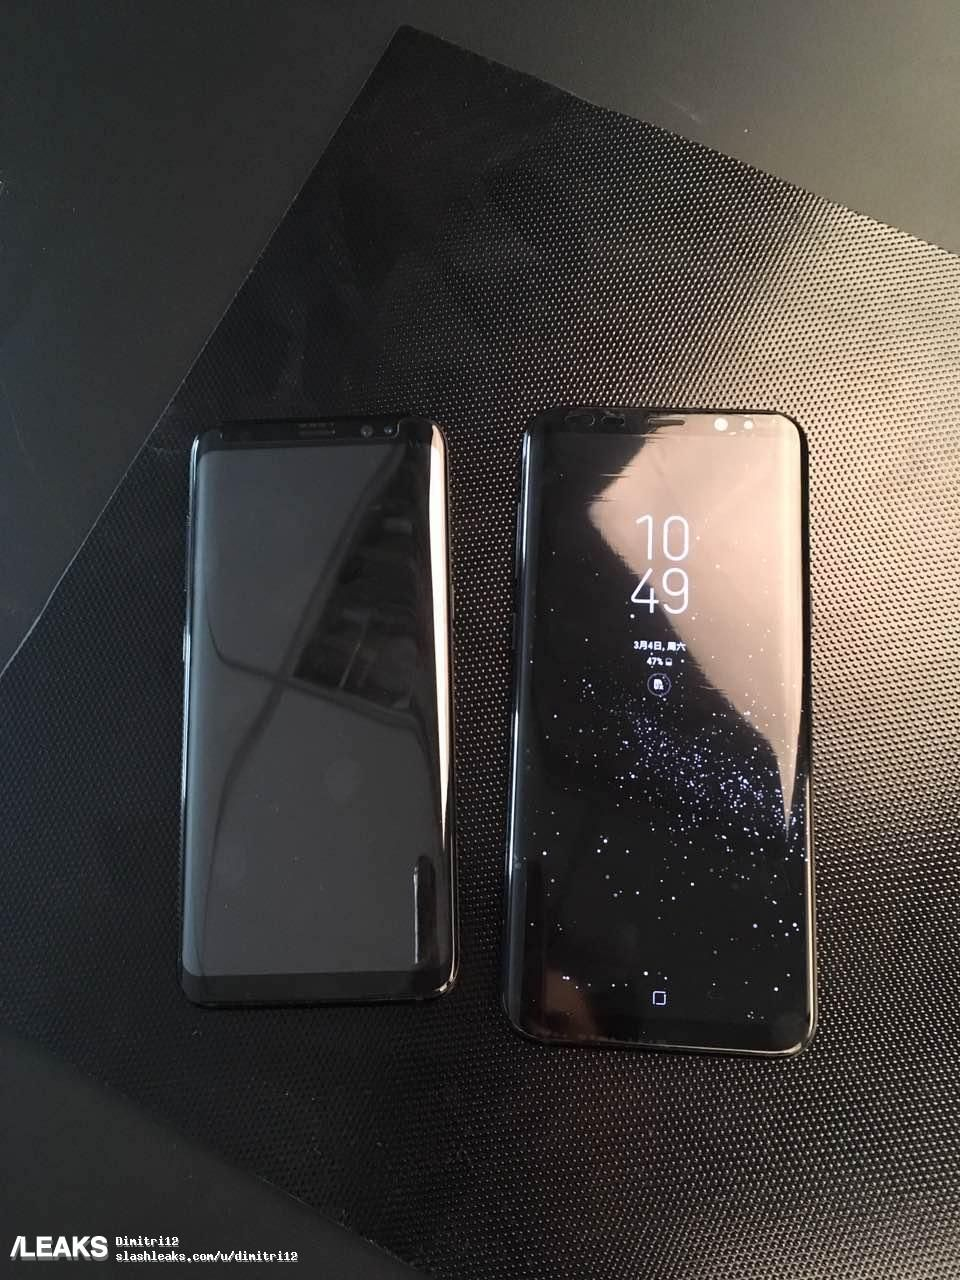 samsung galaxy s8 and s8+ side by side